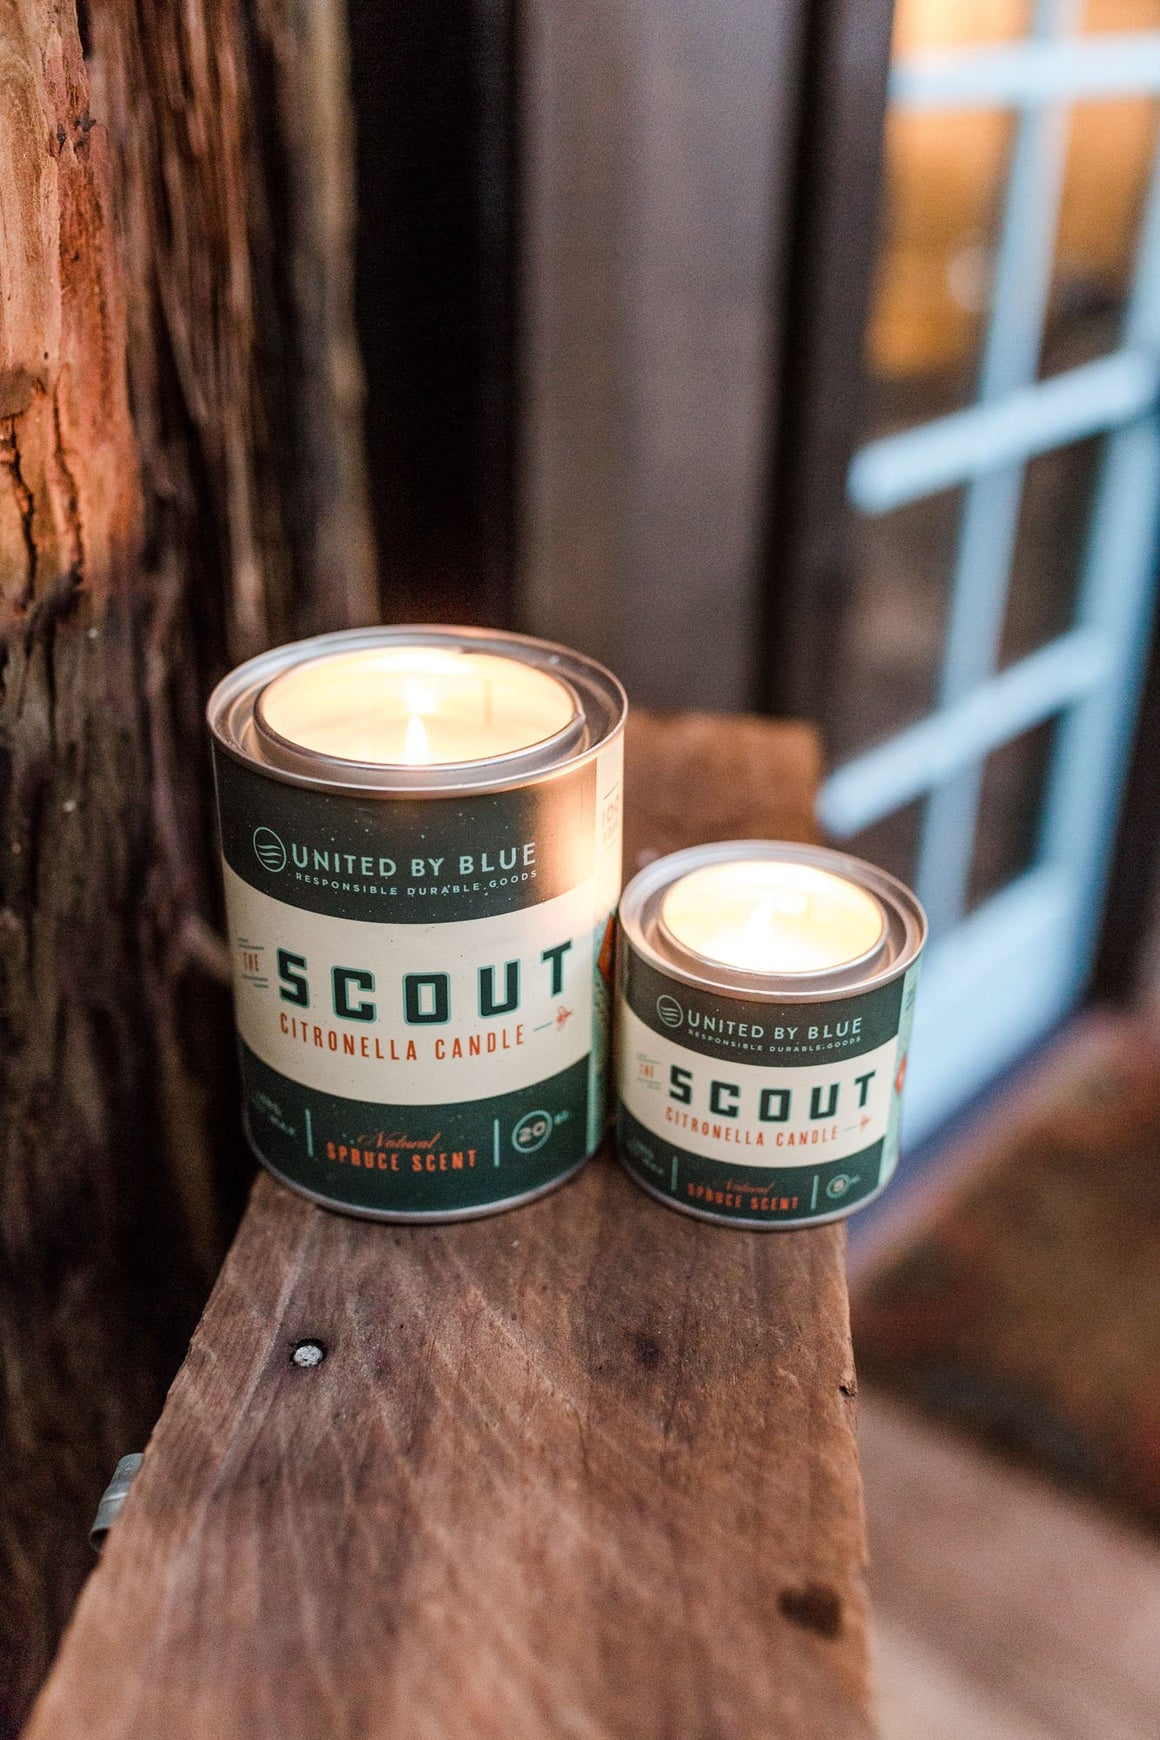 Scout Citronella Candles